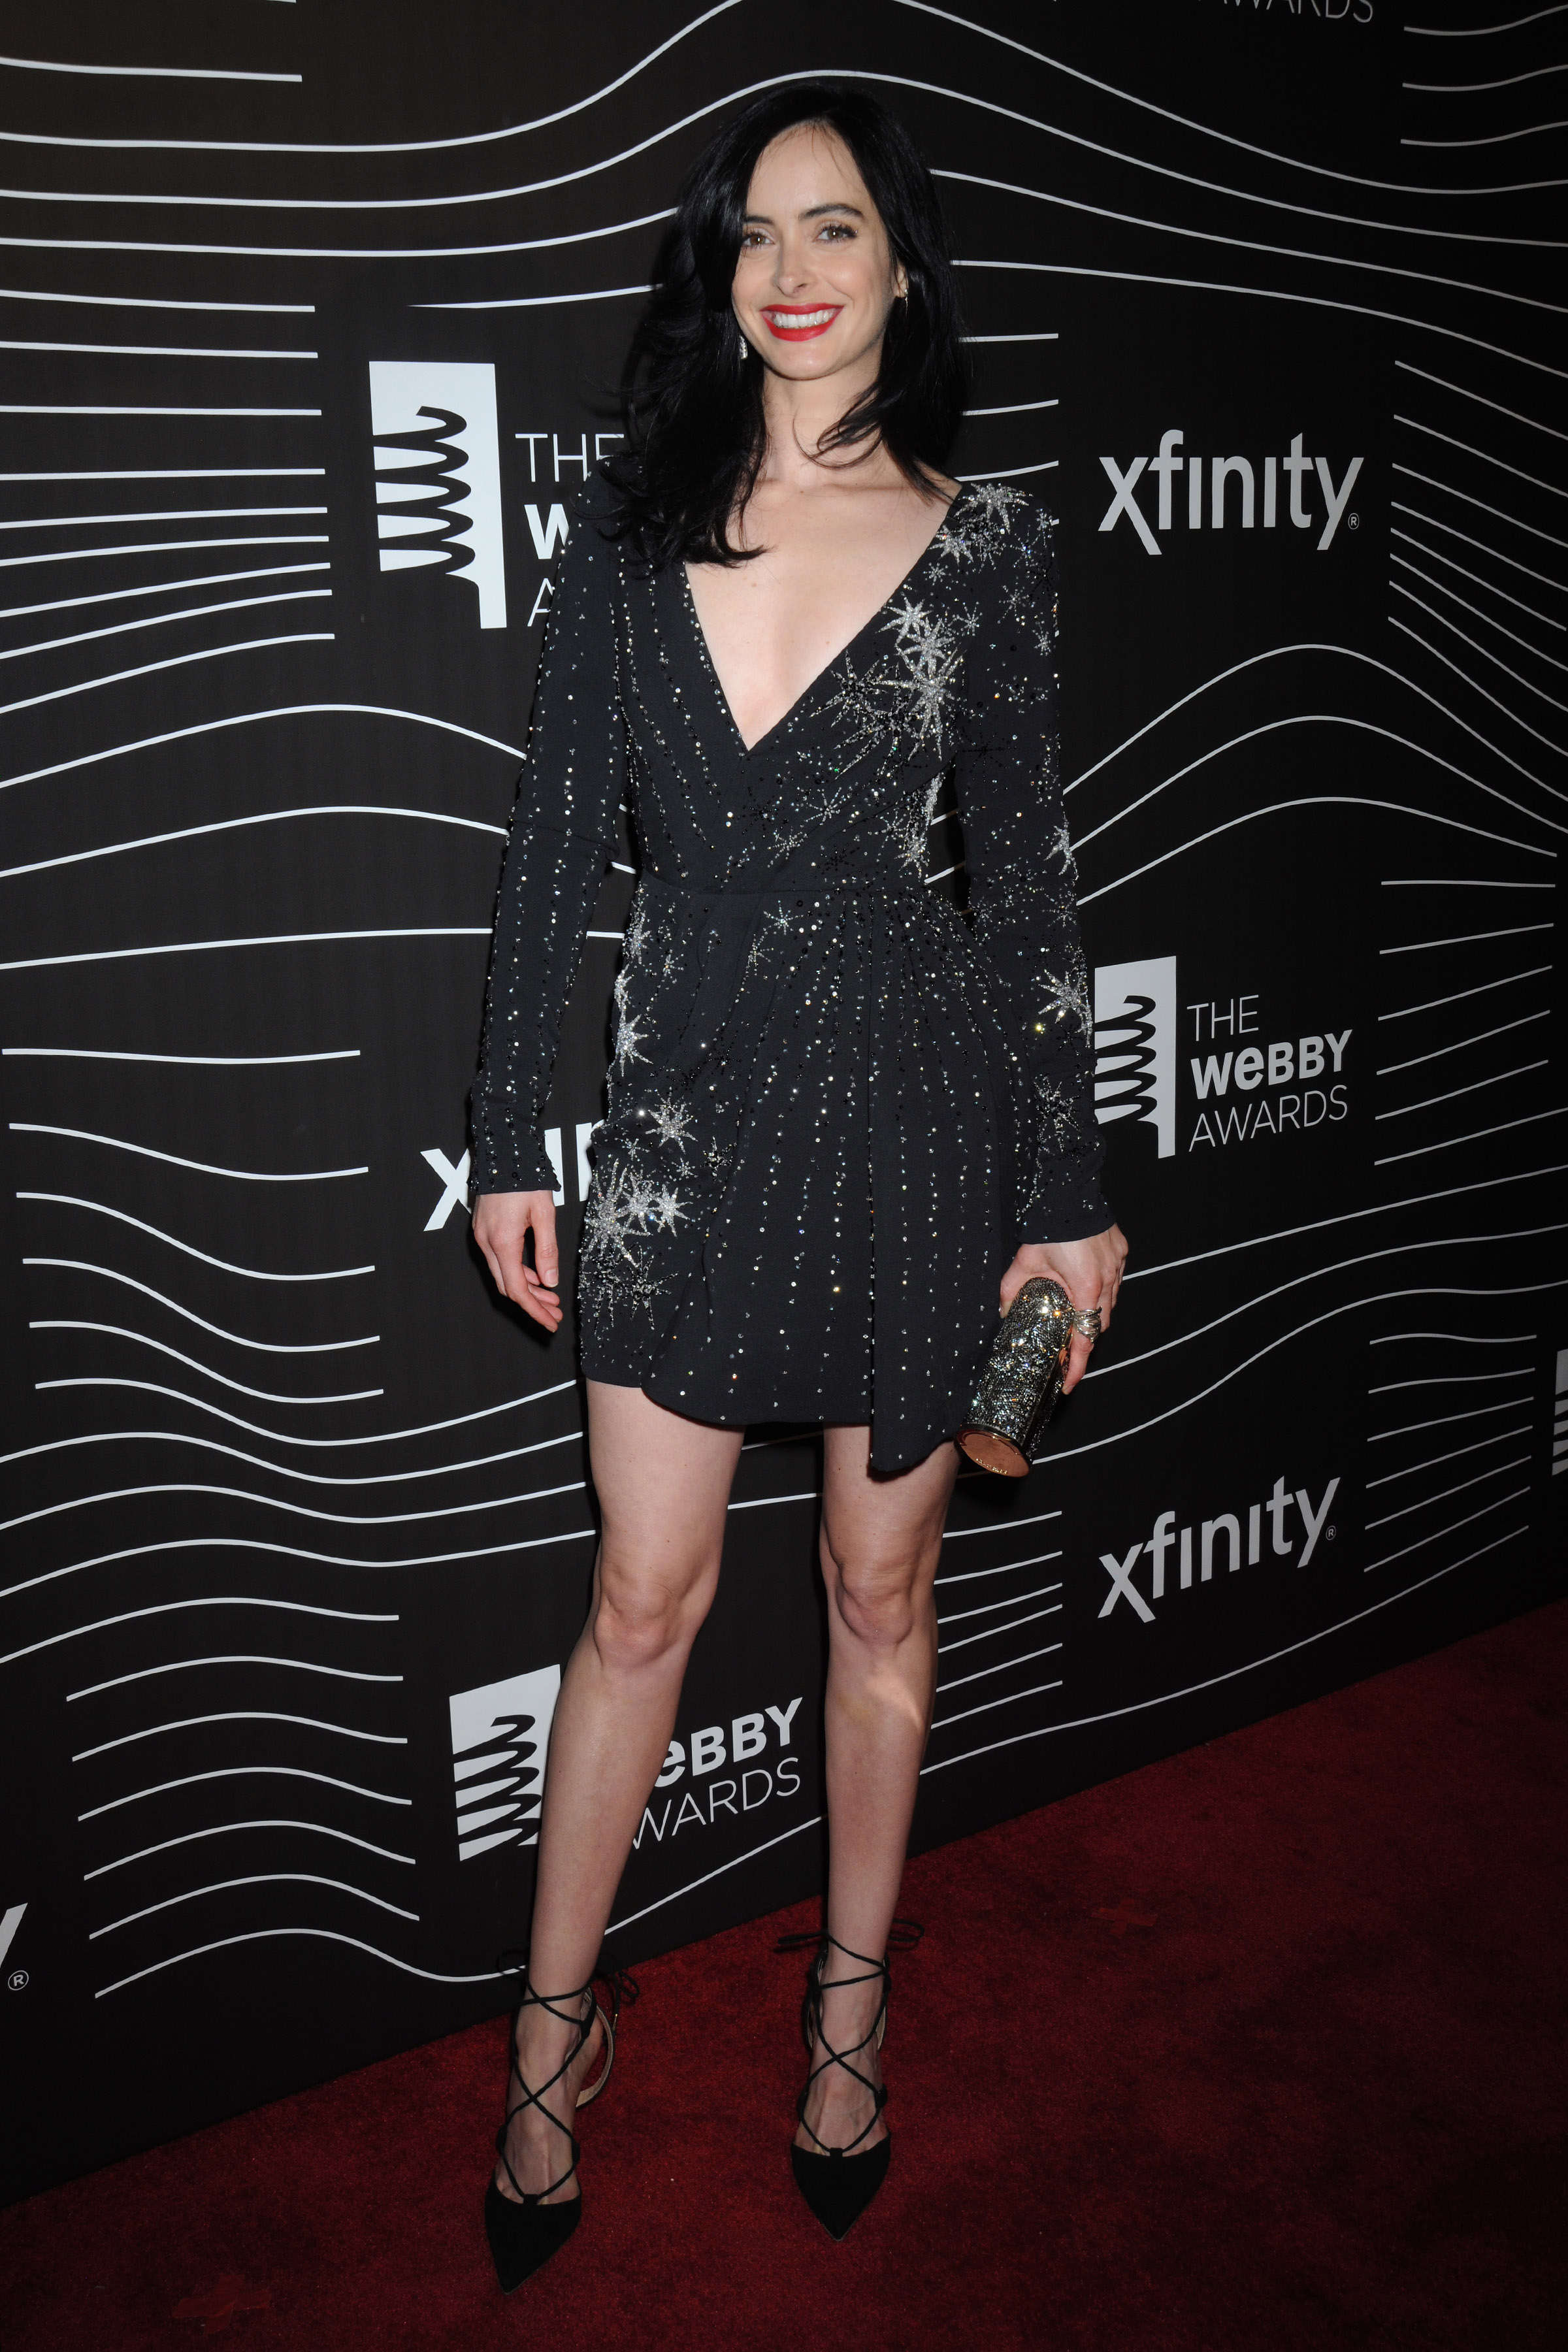 May 16: The 20th Annual Webby Awards - 003 - Krysten ...